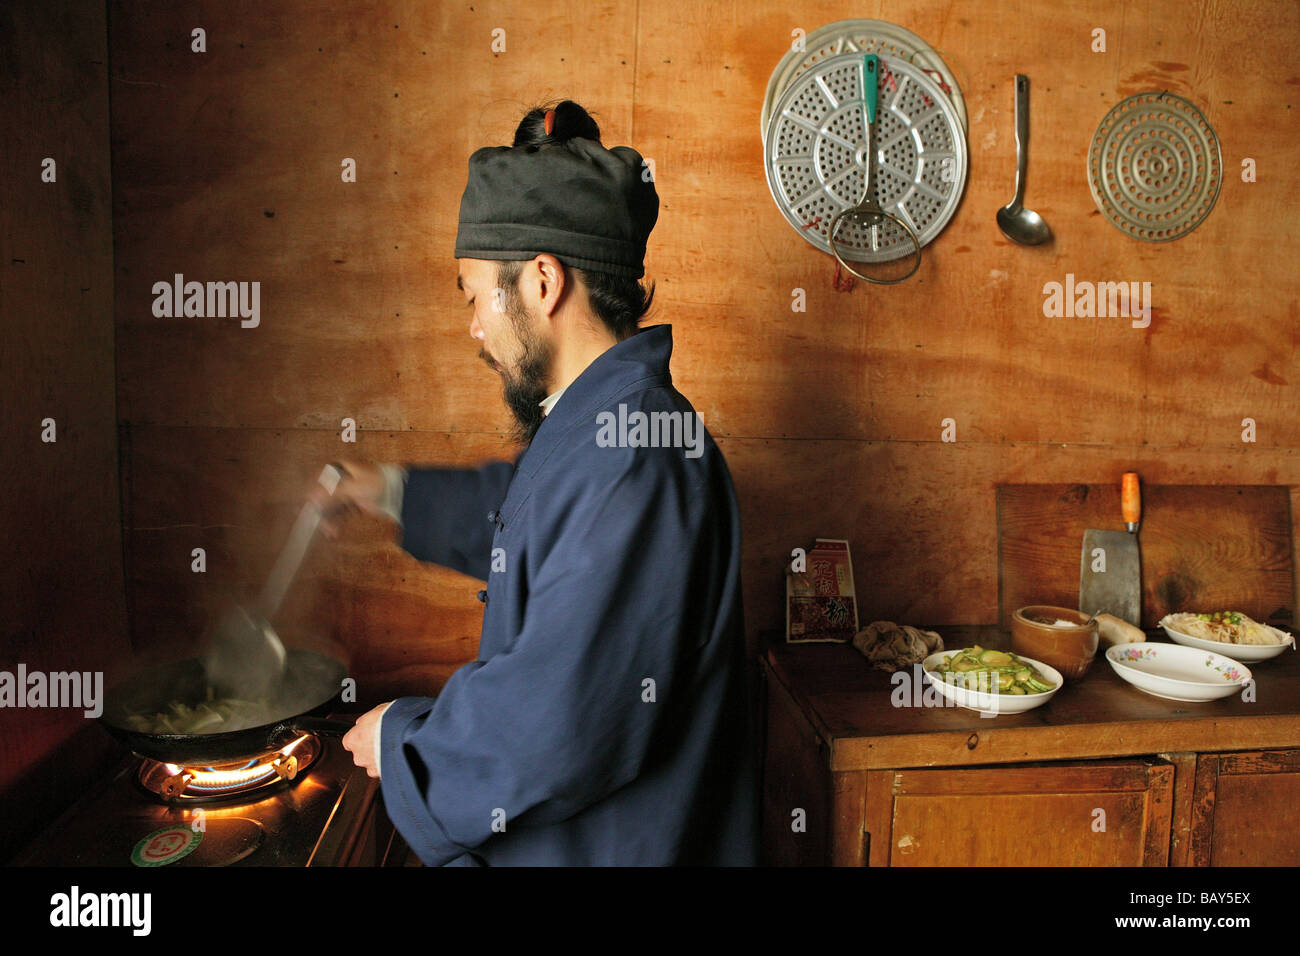 A monk cooking in the kitchen of the monastery Cui Yun Gong, Hua Shan, Shaanxi province, China, Asia - Stock Image